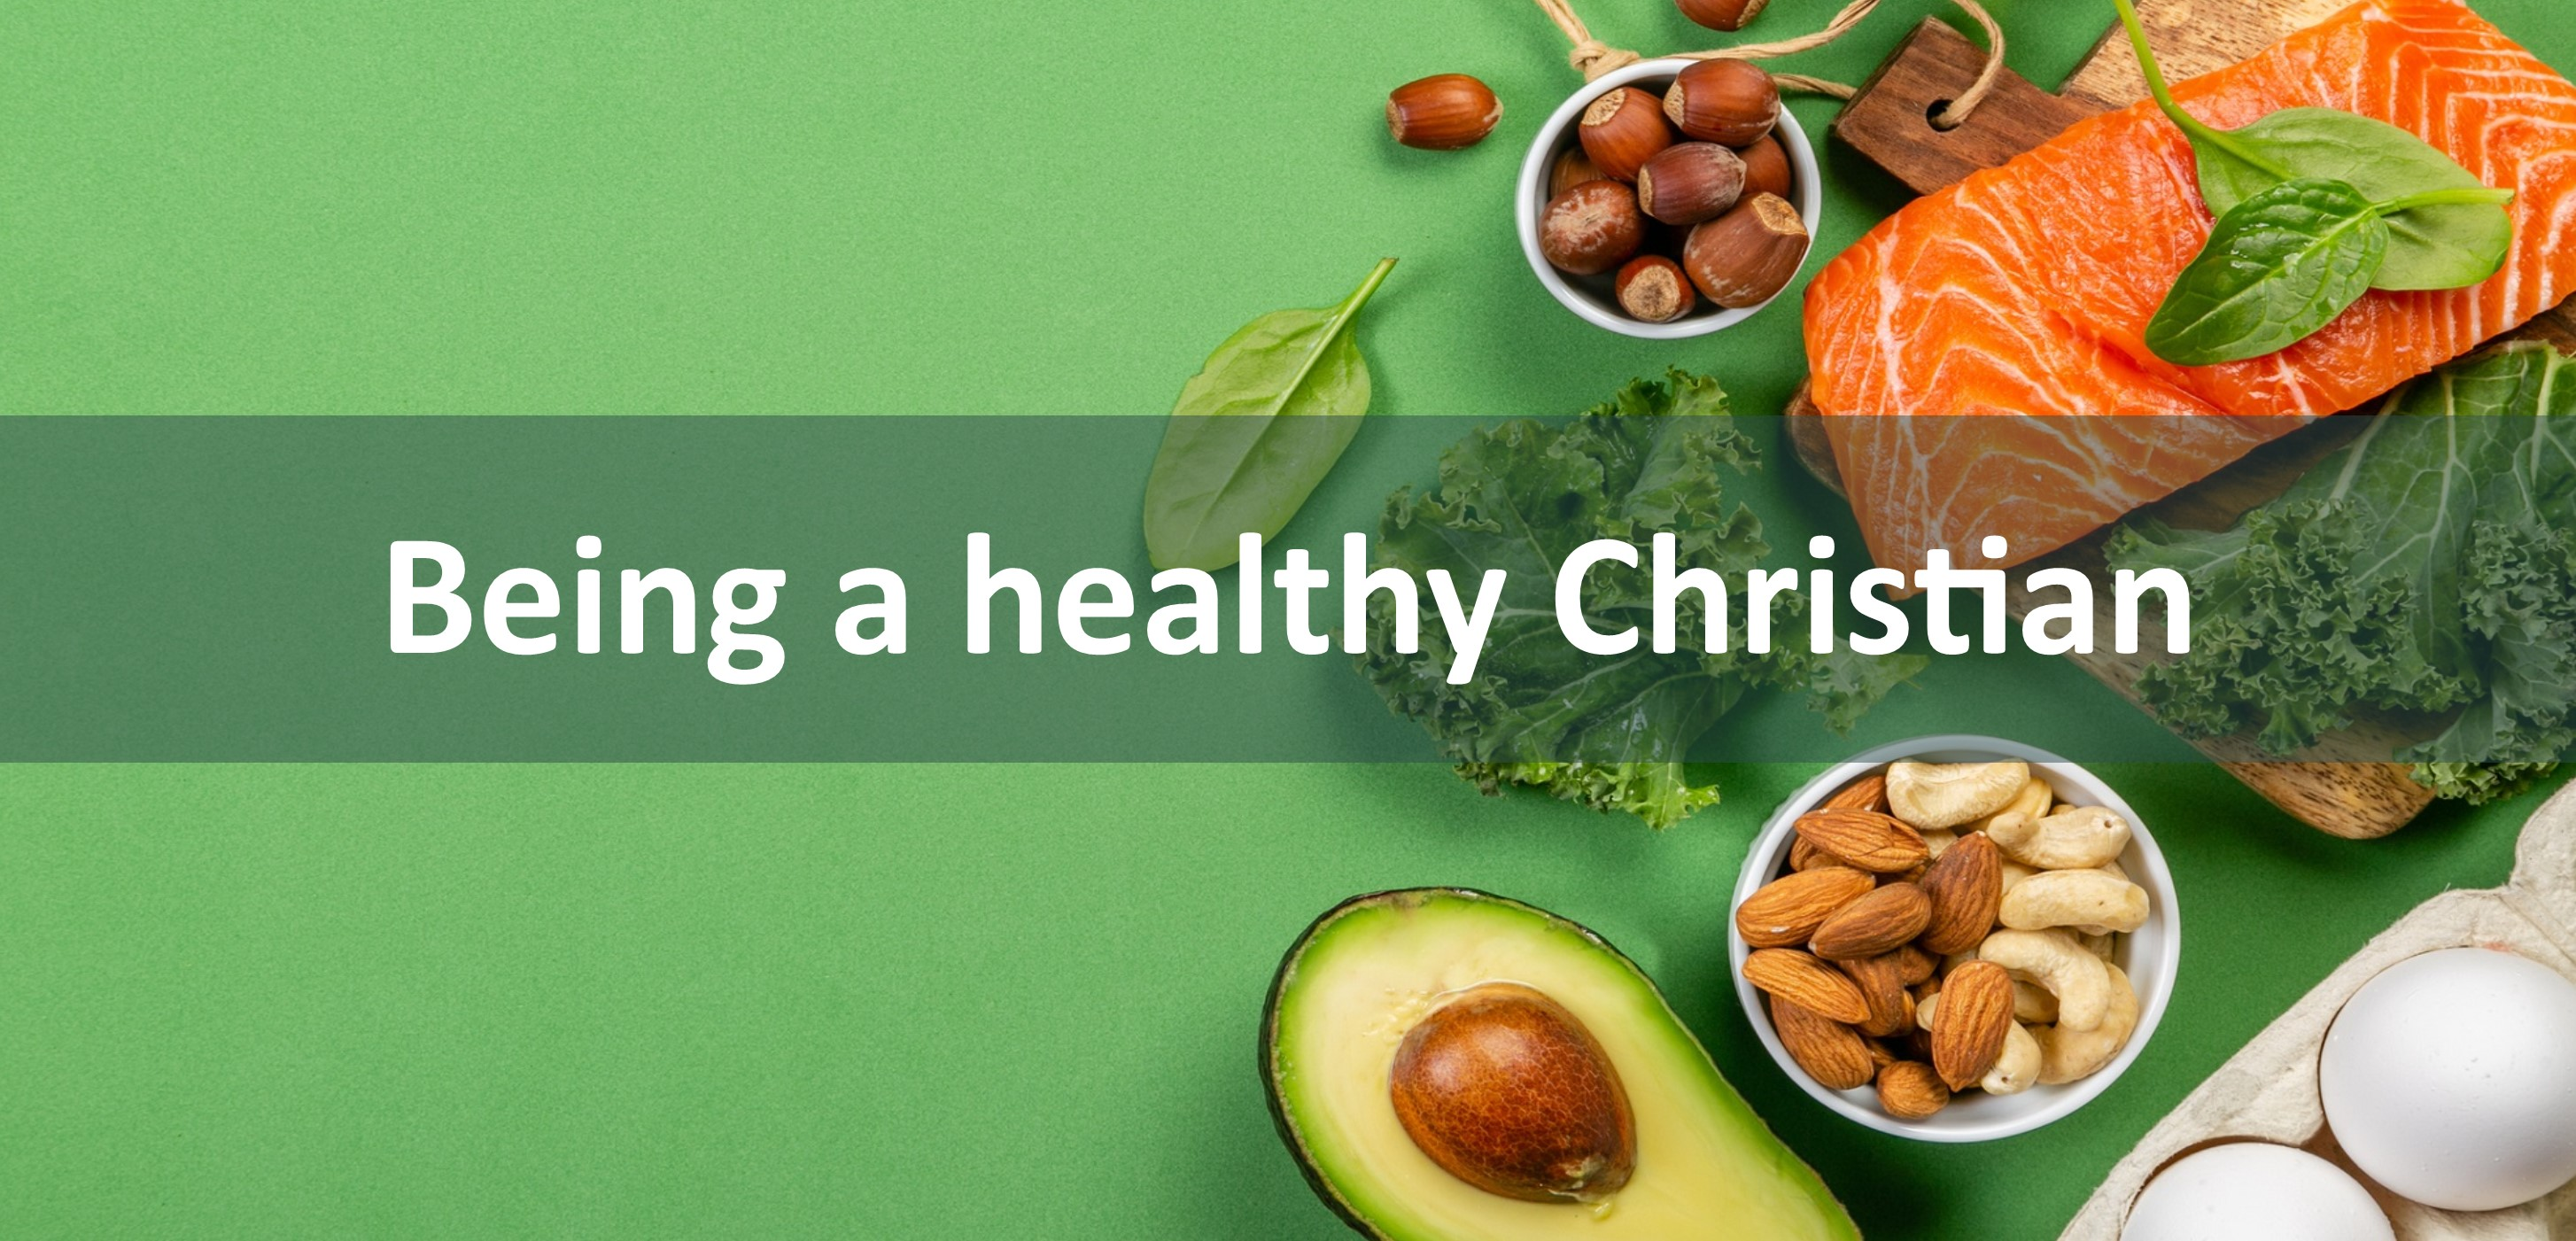 Being a healthy Christian